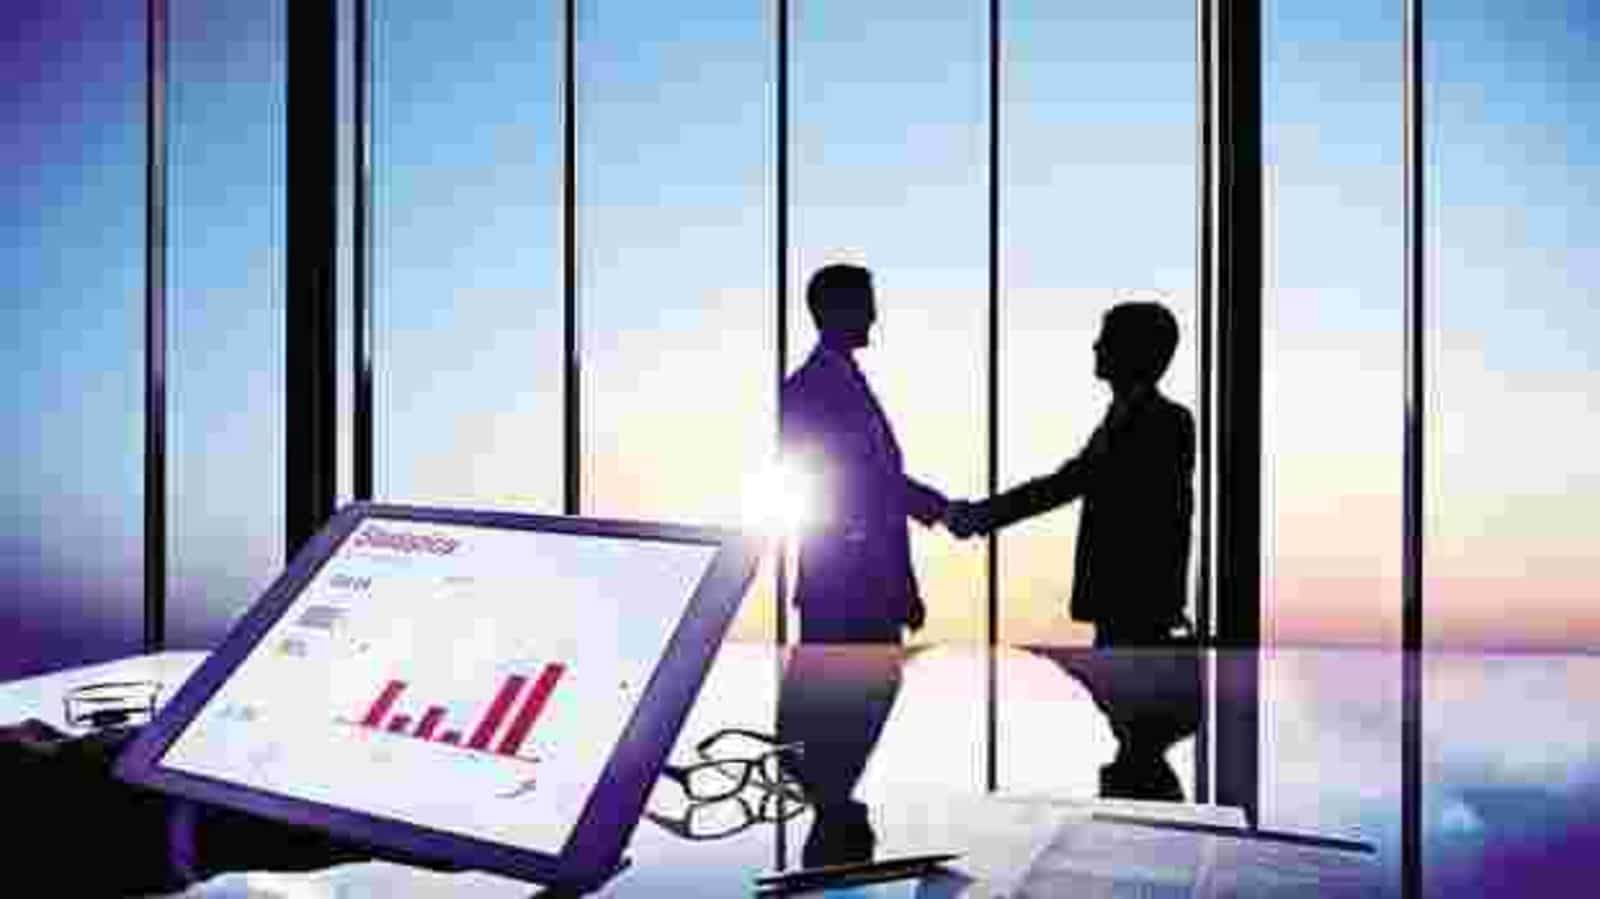 livemint.com - Utpal Bhaskar - ReNew to announce merger with RMG Acquisition at $3.7-bn pre-money valuation